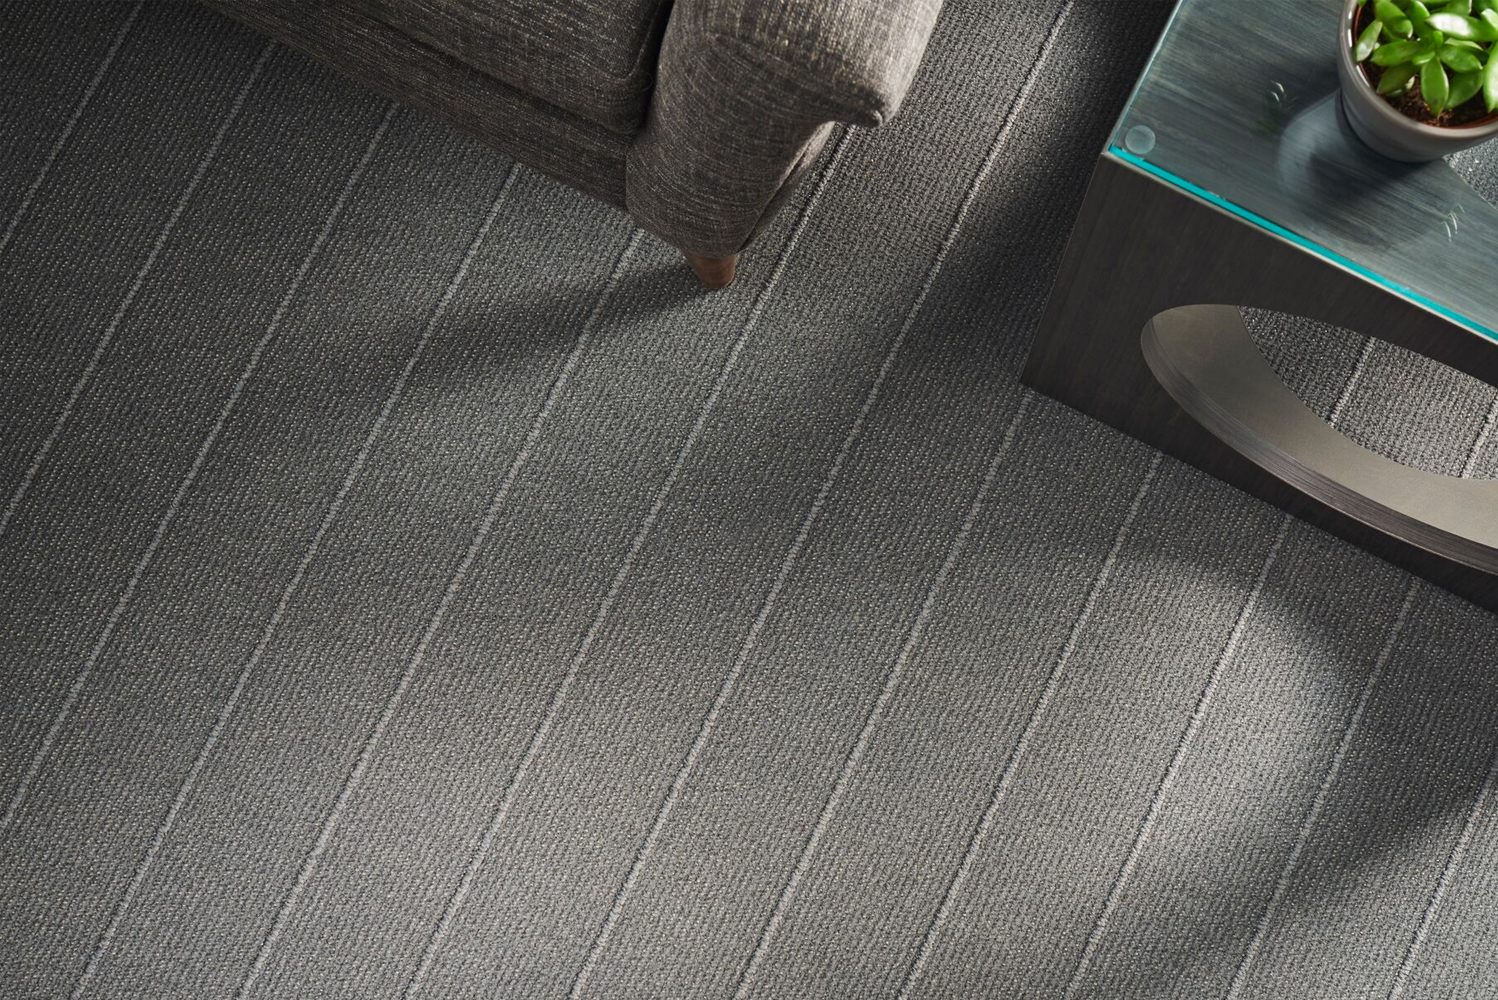 It also meets new requirements for indoor air quality credit on low emitting flooring (CRI Green Label Plus) and low TVOCs.